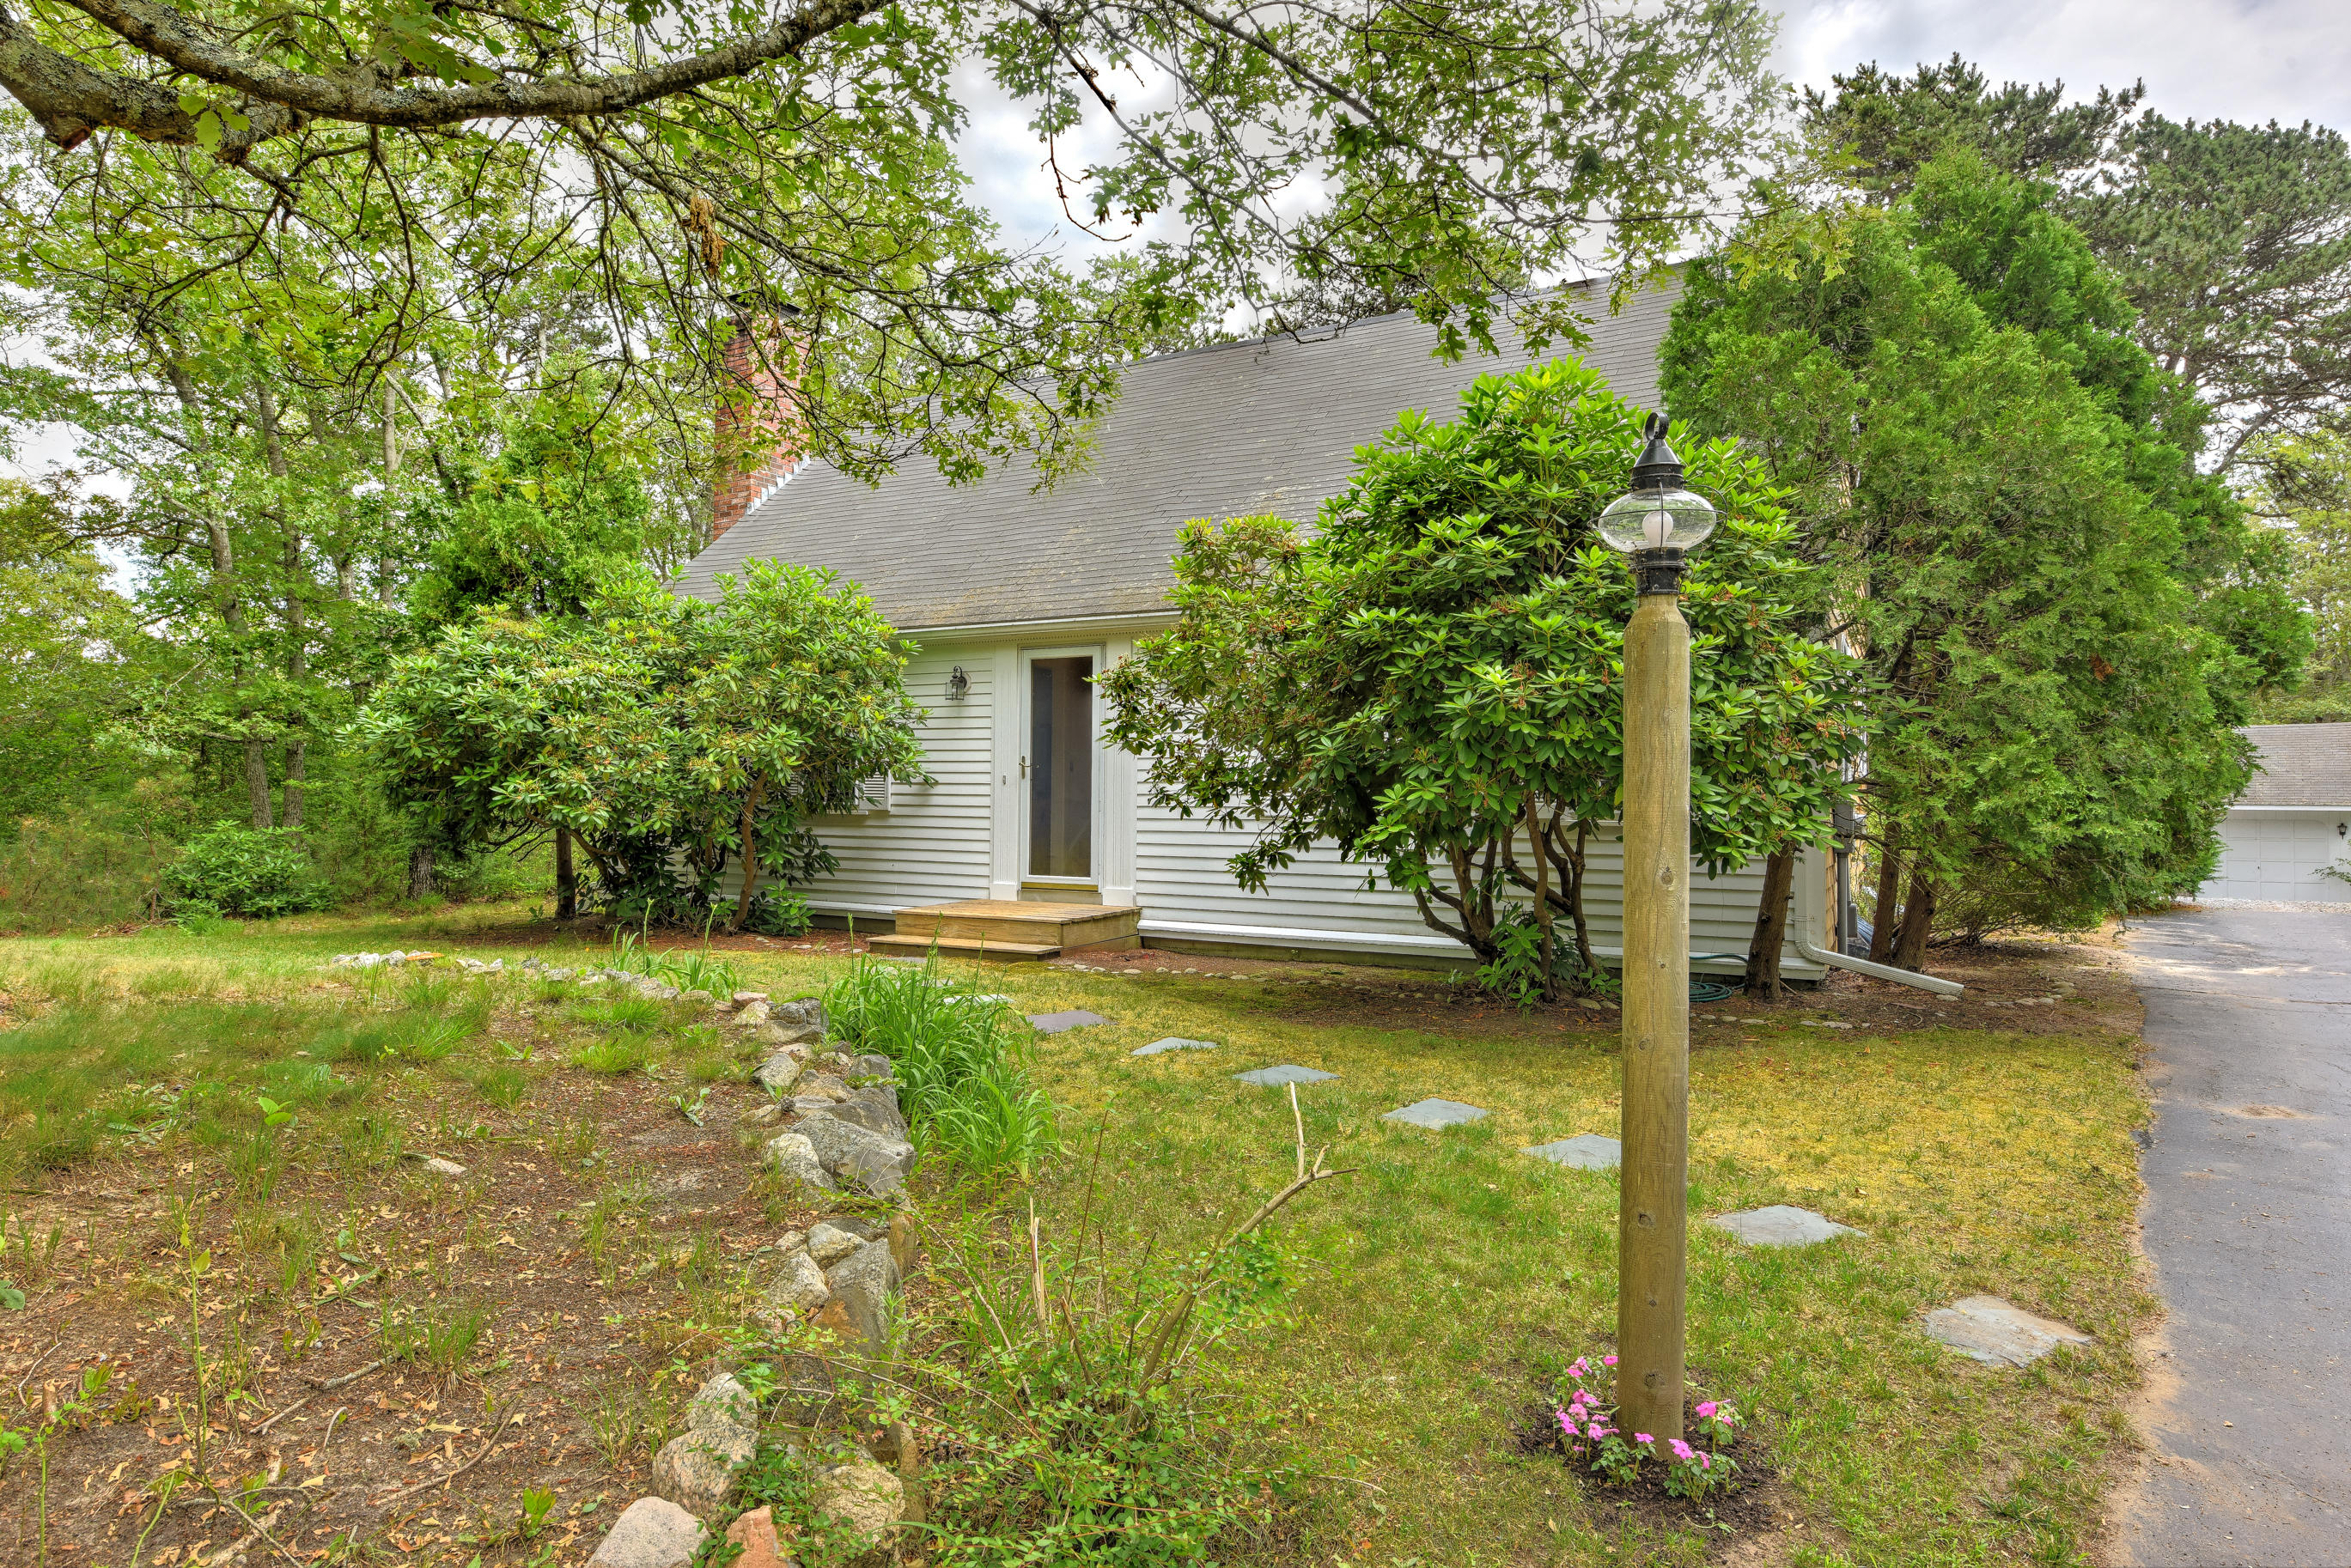 44 GEMINI DRIVE, WEST BARNSTABLE, MA 02668